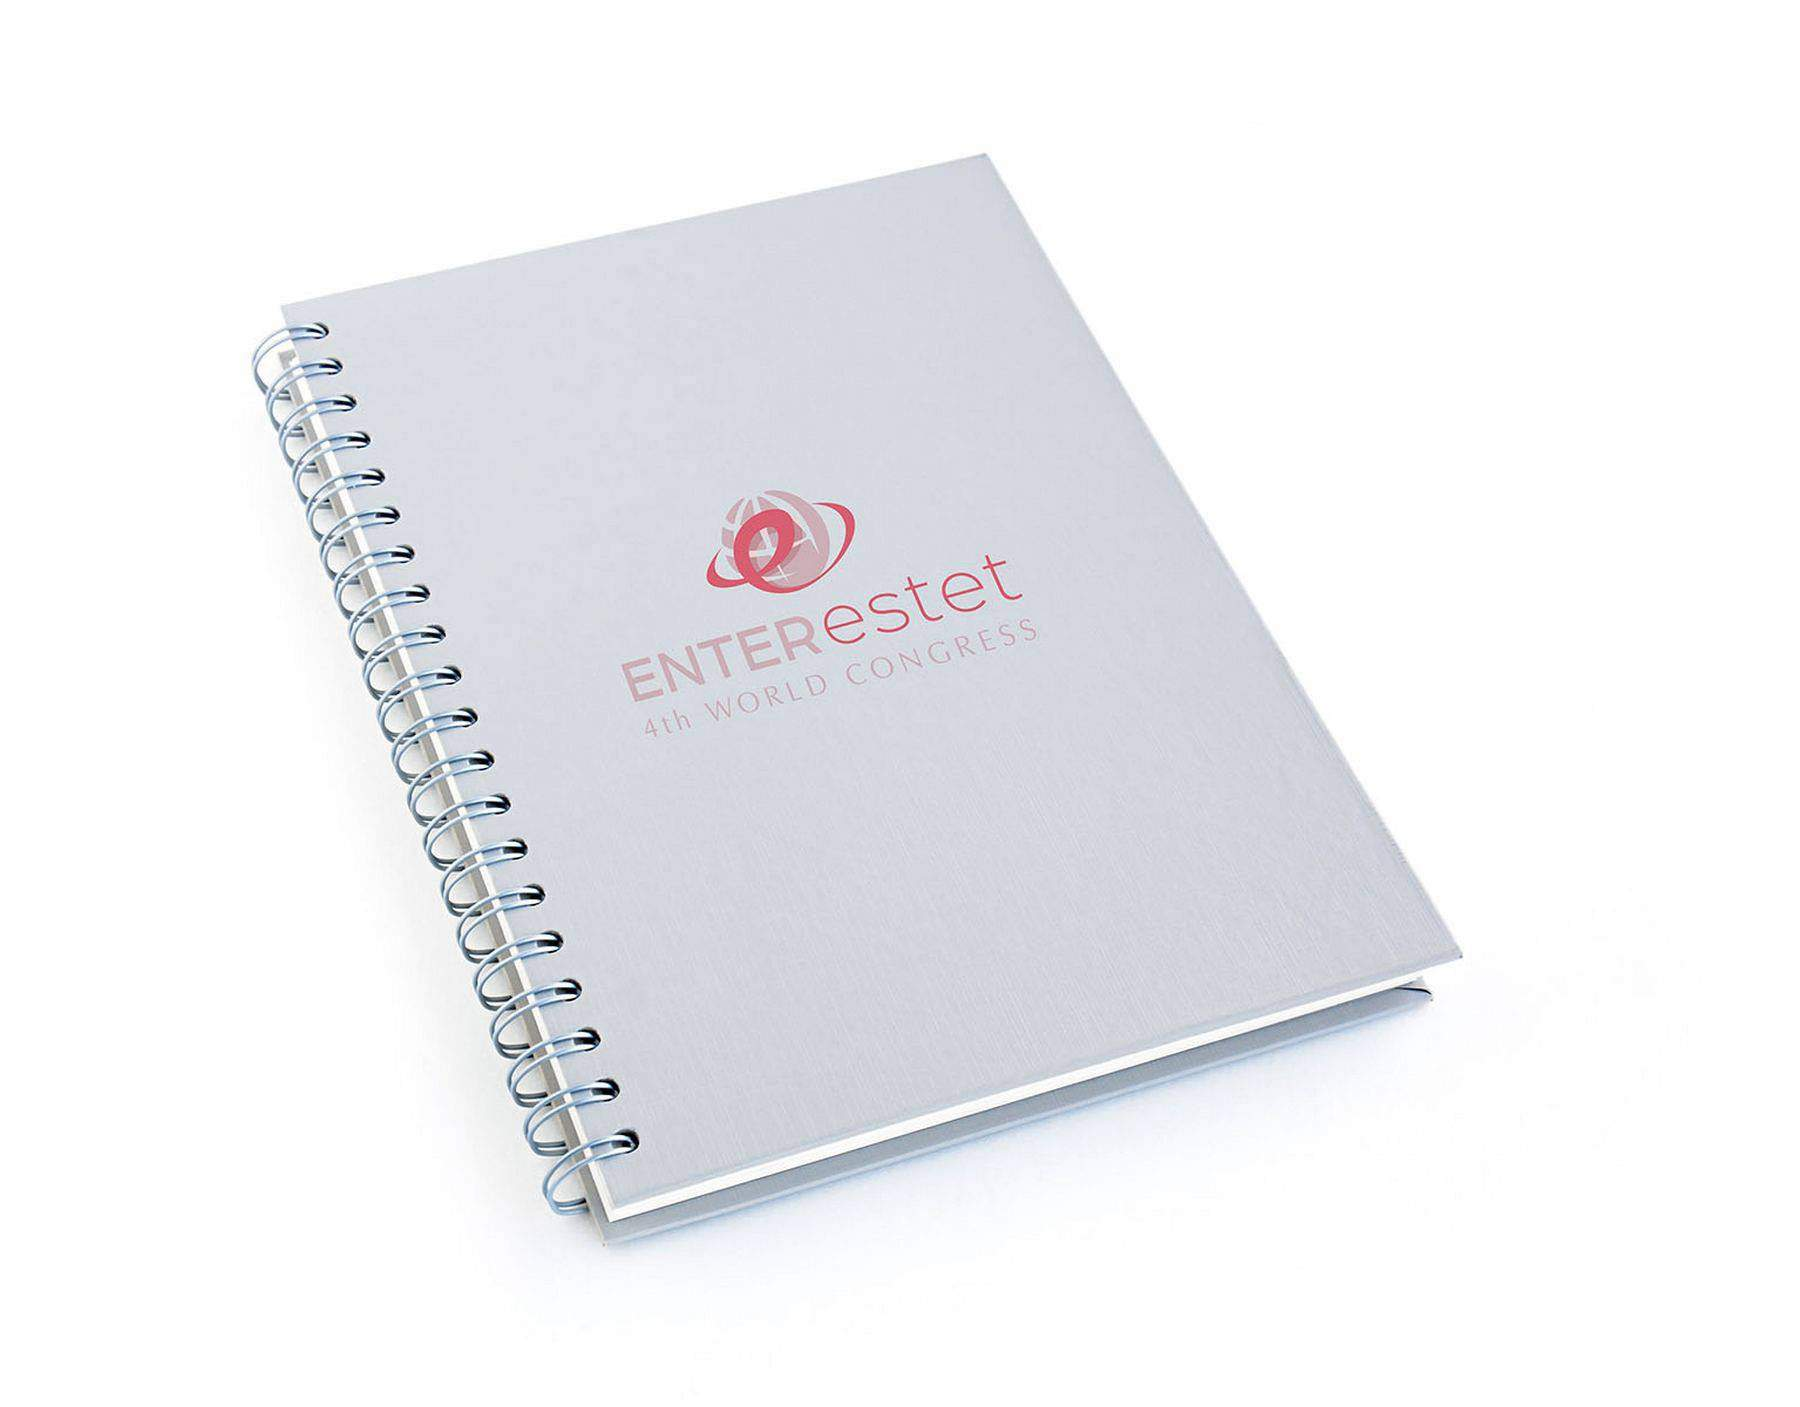 ENTERESTET World anti-age congress logo design portfolio